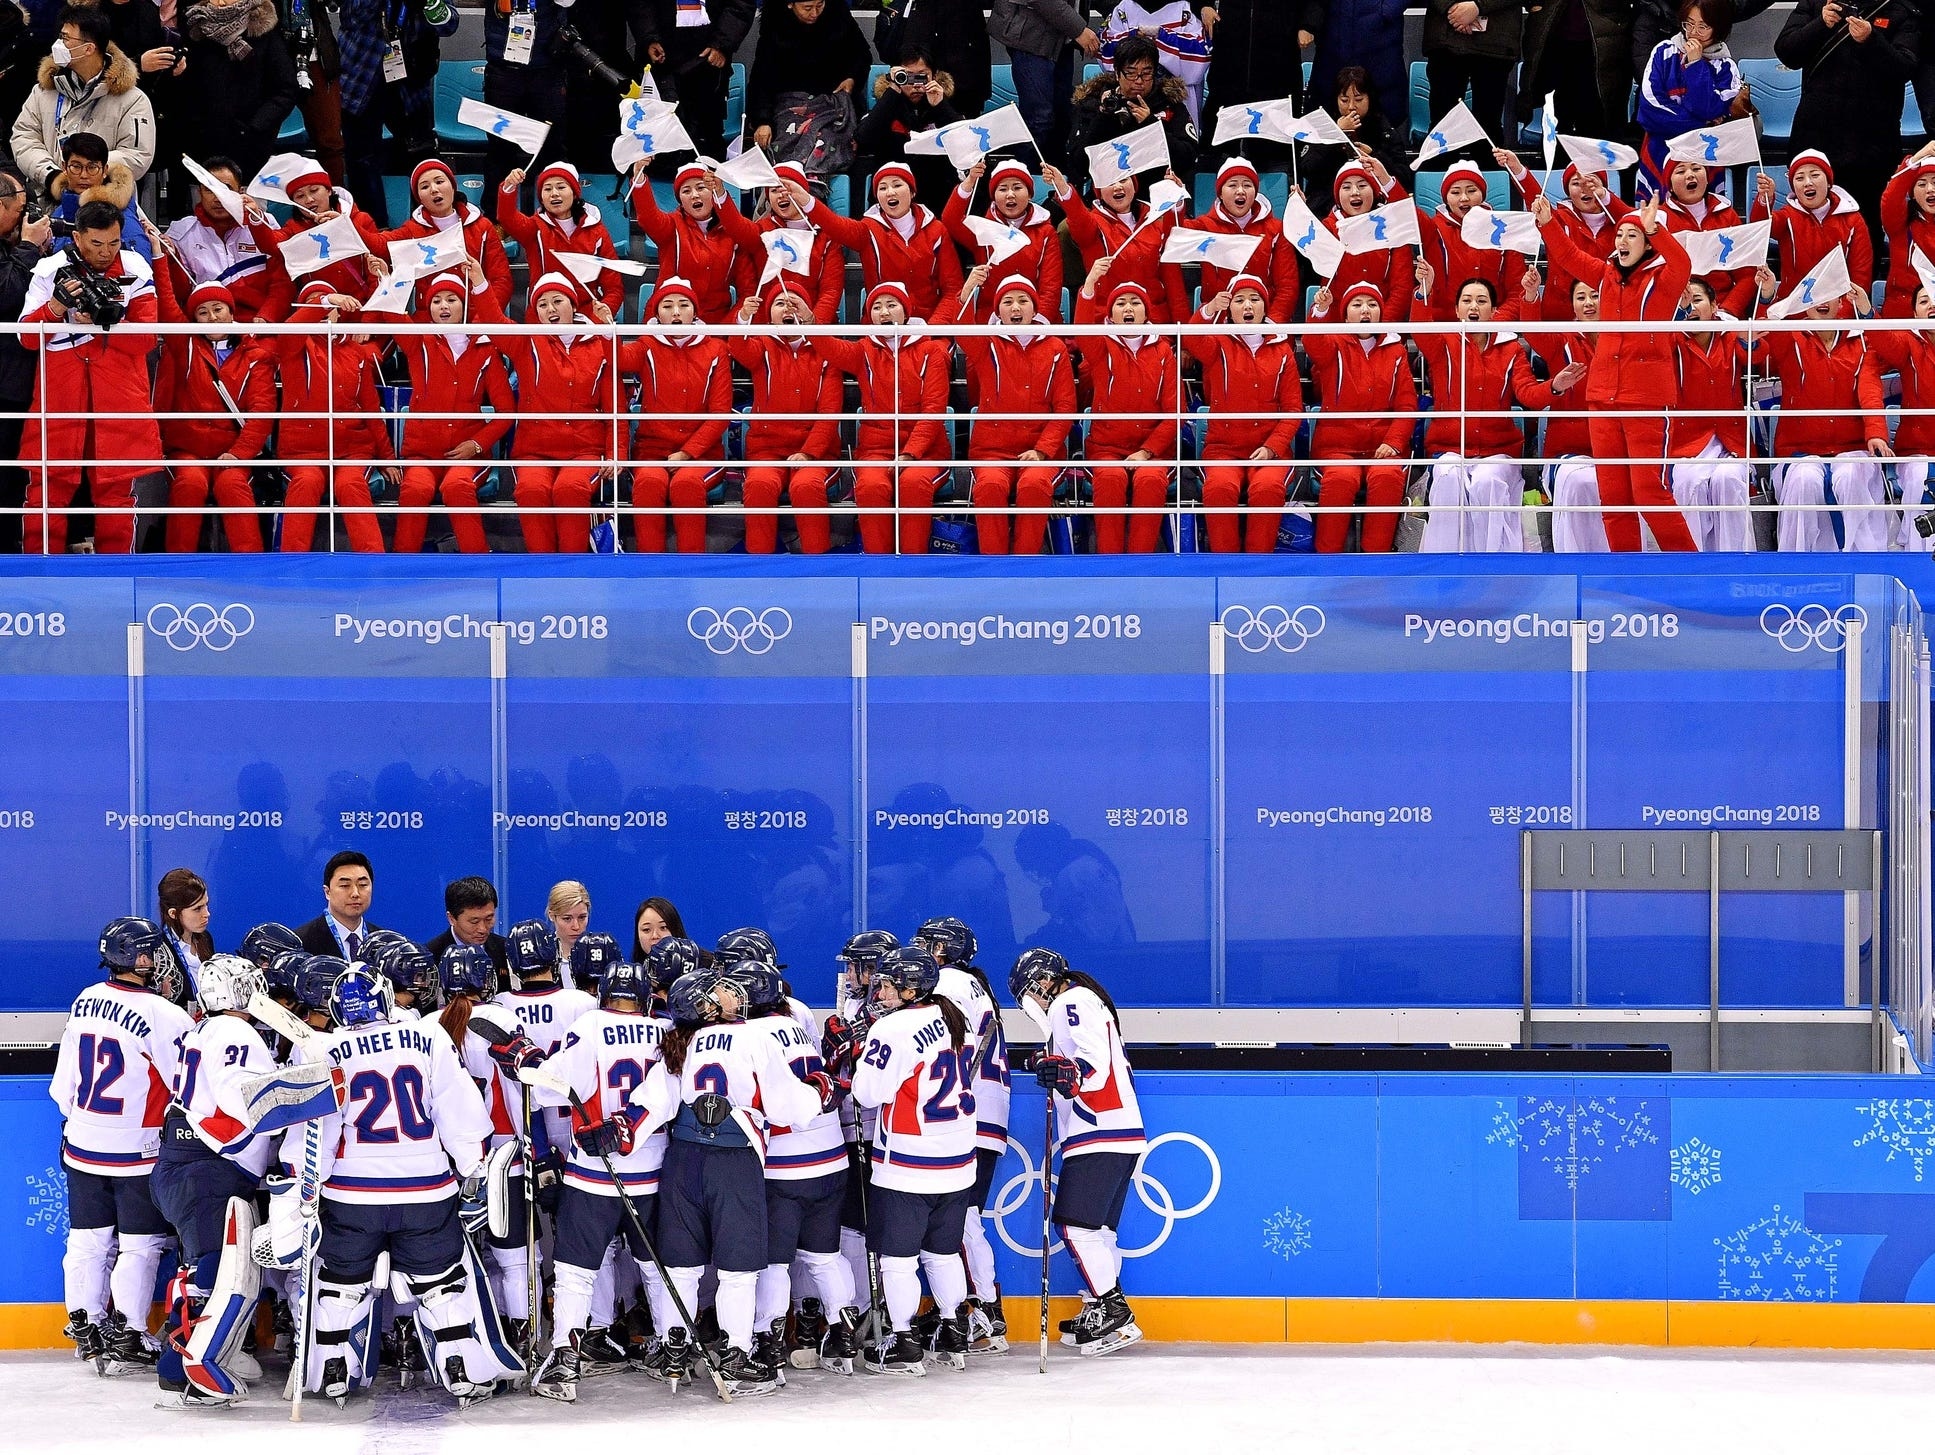 Pyeongchang: Olympic Hockey - Korean Team Struggles Against Switzerland In 8-0 Loss